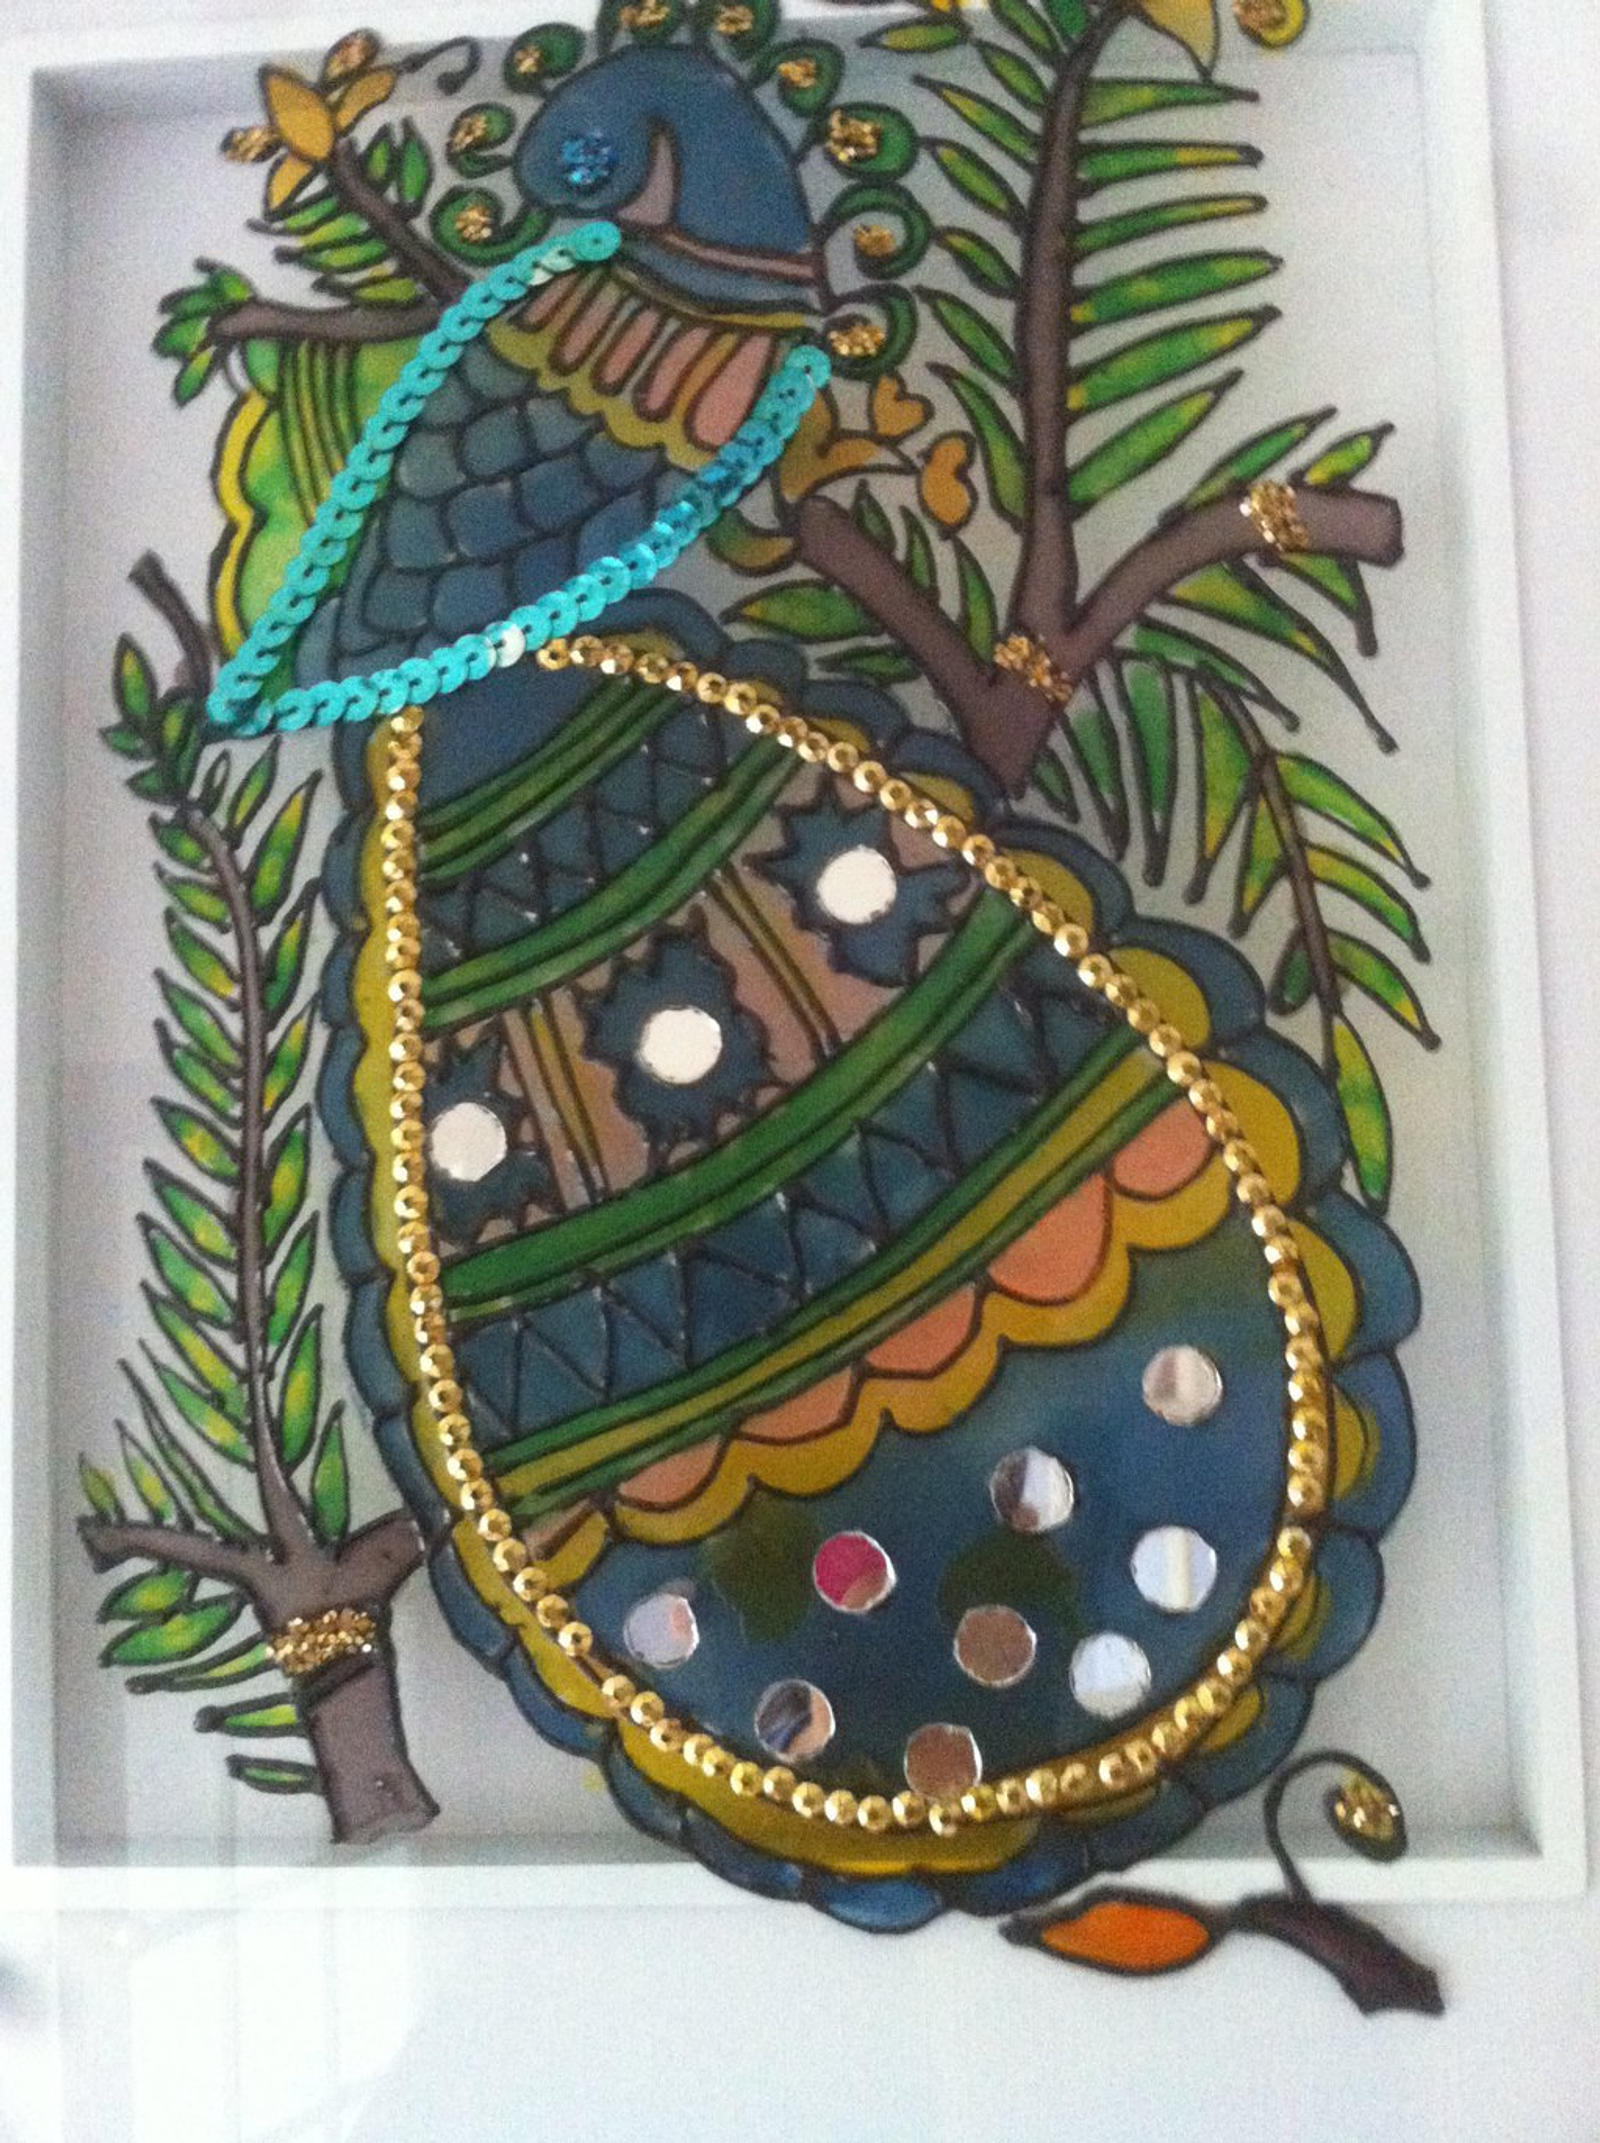 Peacock Designs For Glass Painting Patterns | www.imgkid ...